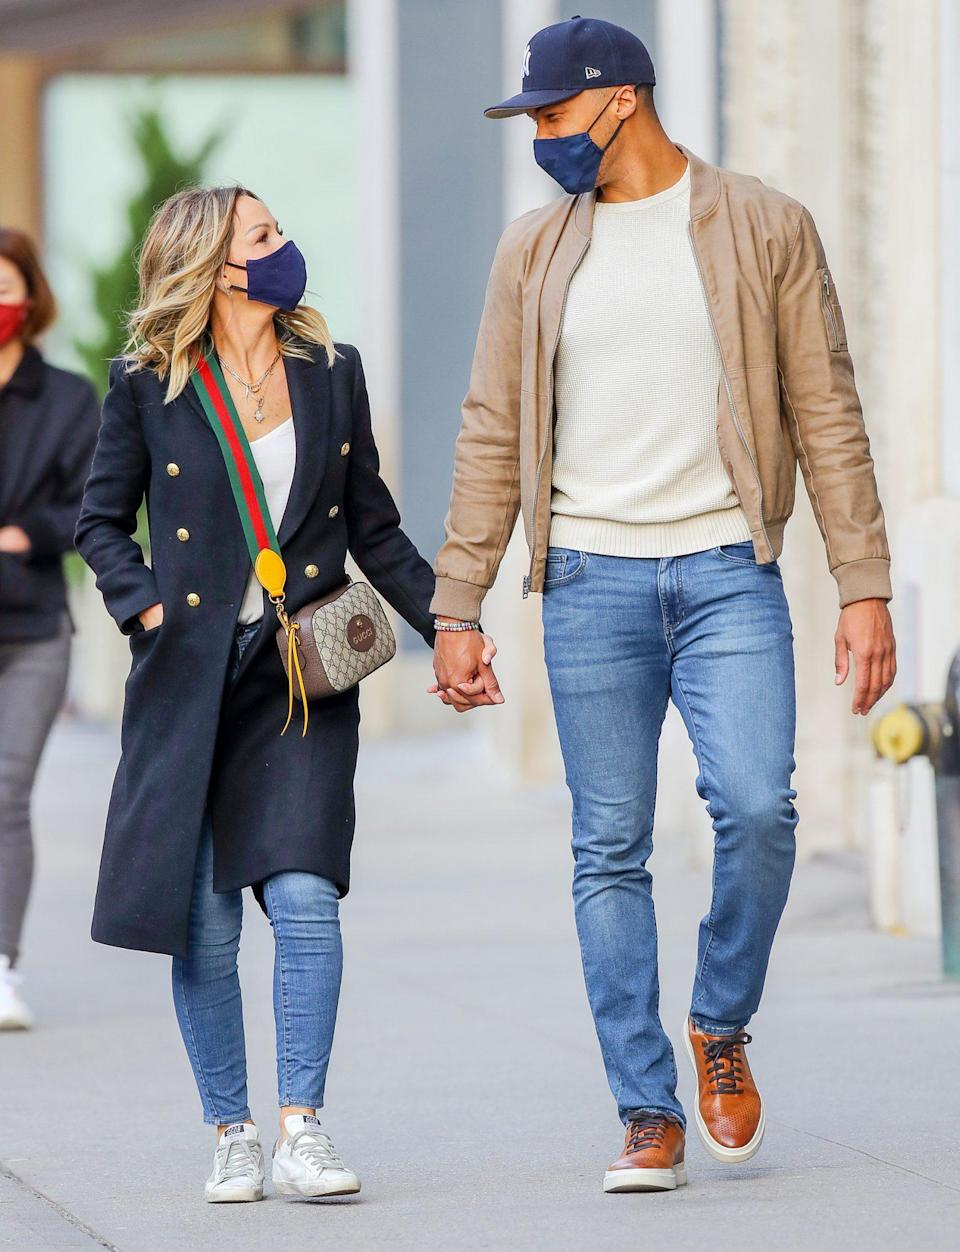 <p>Clare Crawley and Dale Moss have a sweet exchange during their weekend walk through N.Y.C. </p>